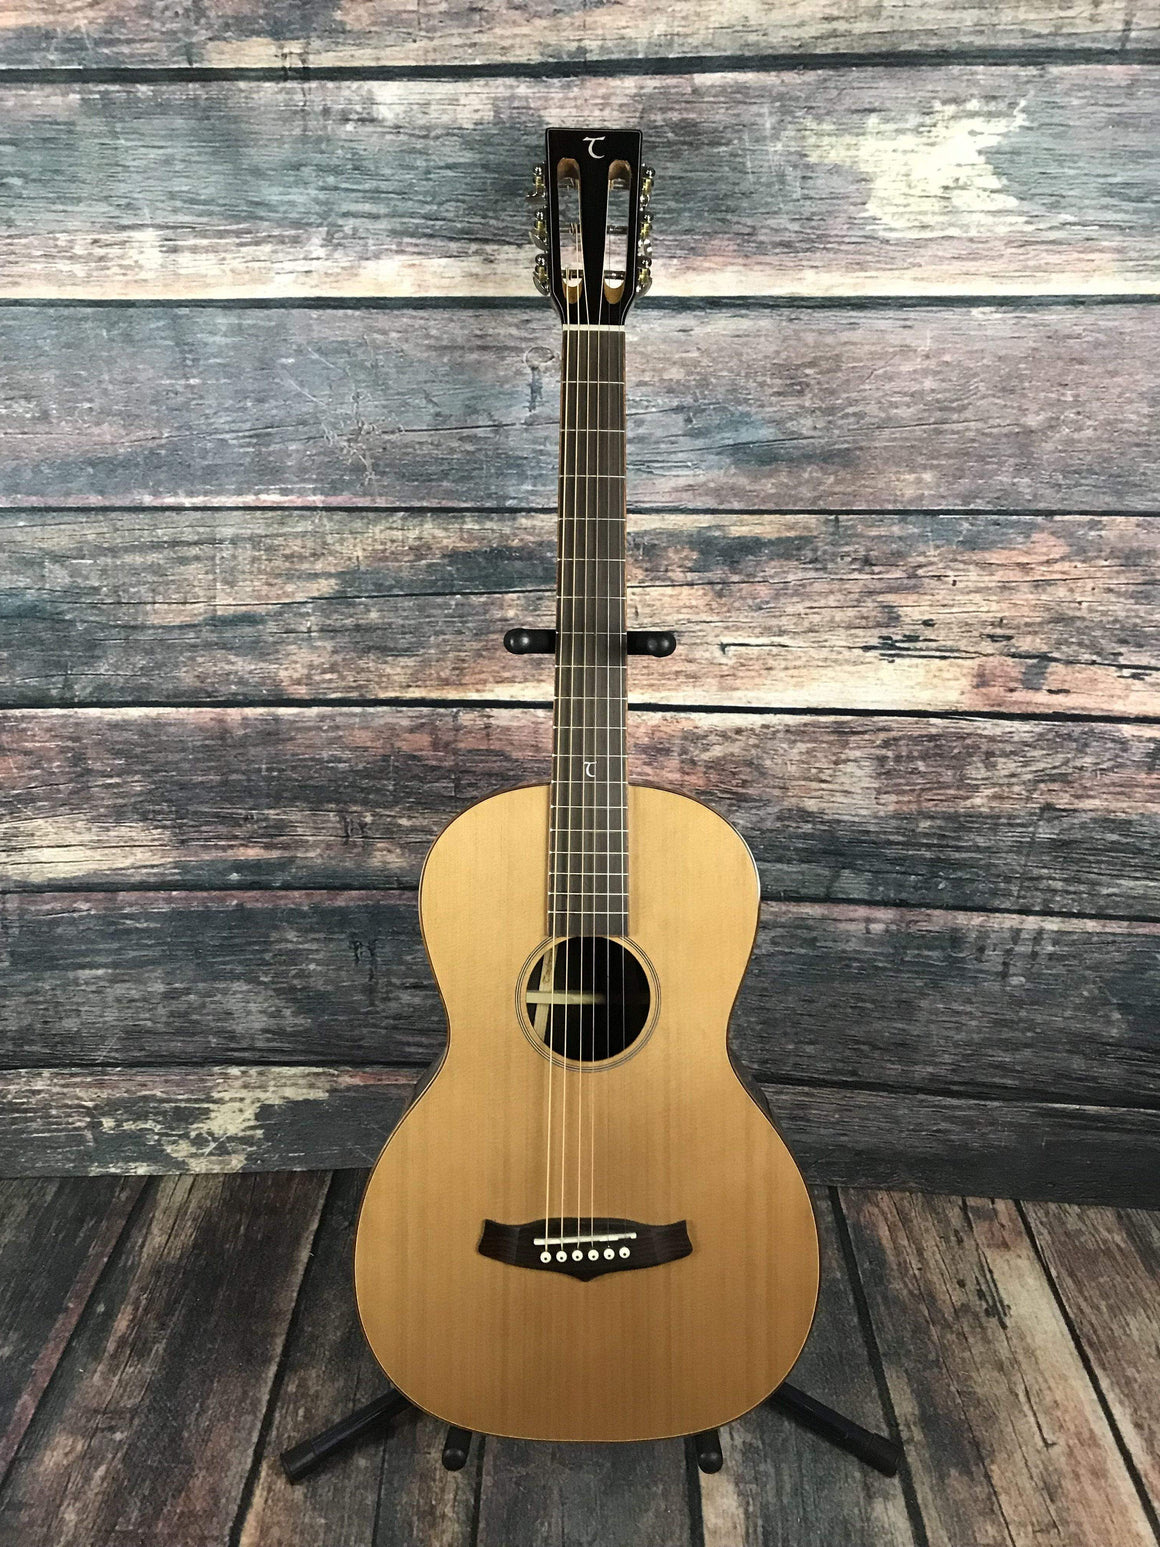 Tanglewood Acoustic Guitar Used Tanglewood Java Series TWJPE Parlour Acoustic Guitar with gig bag